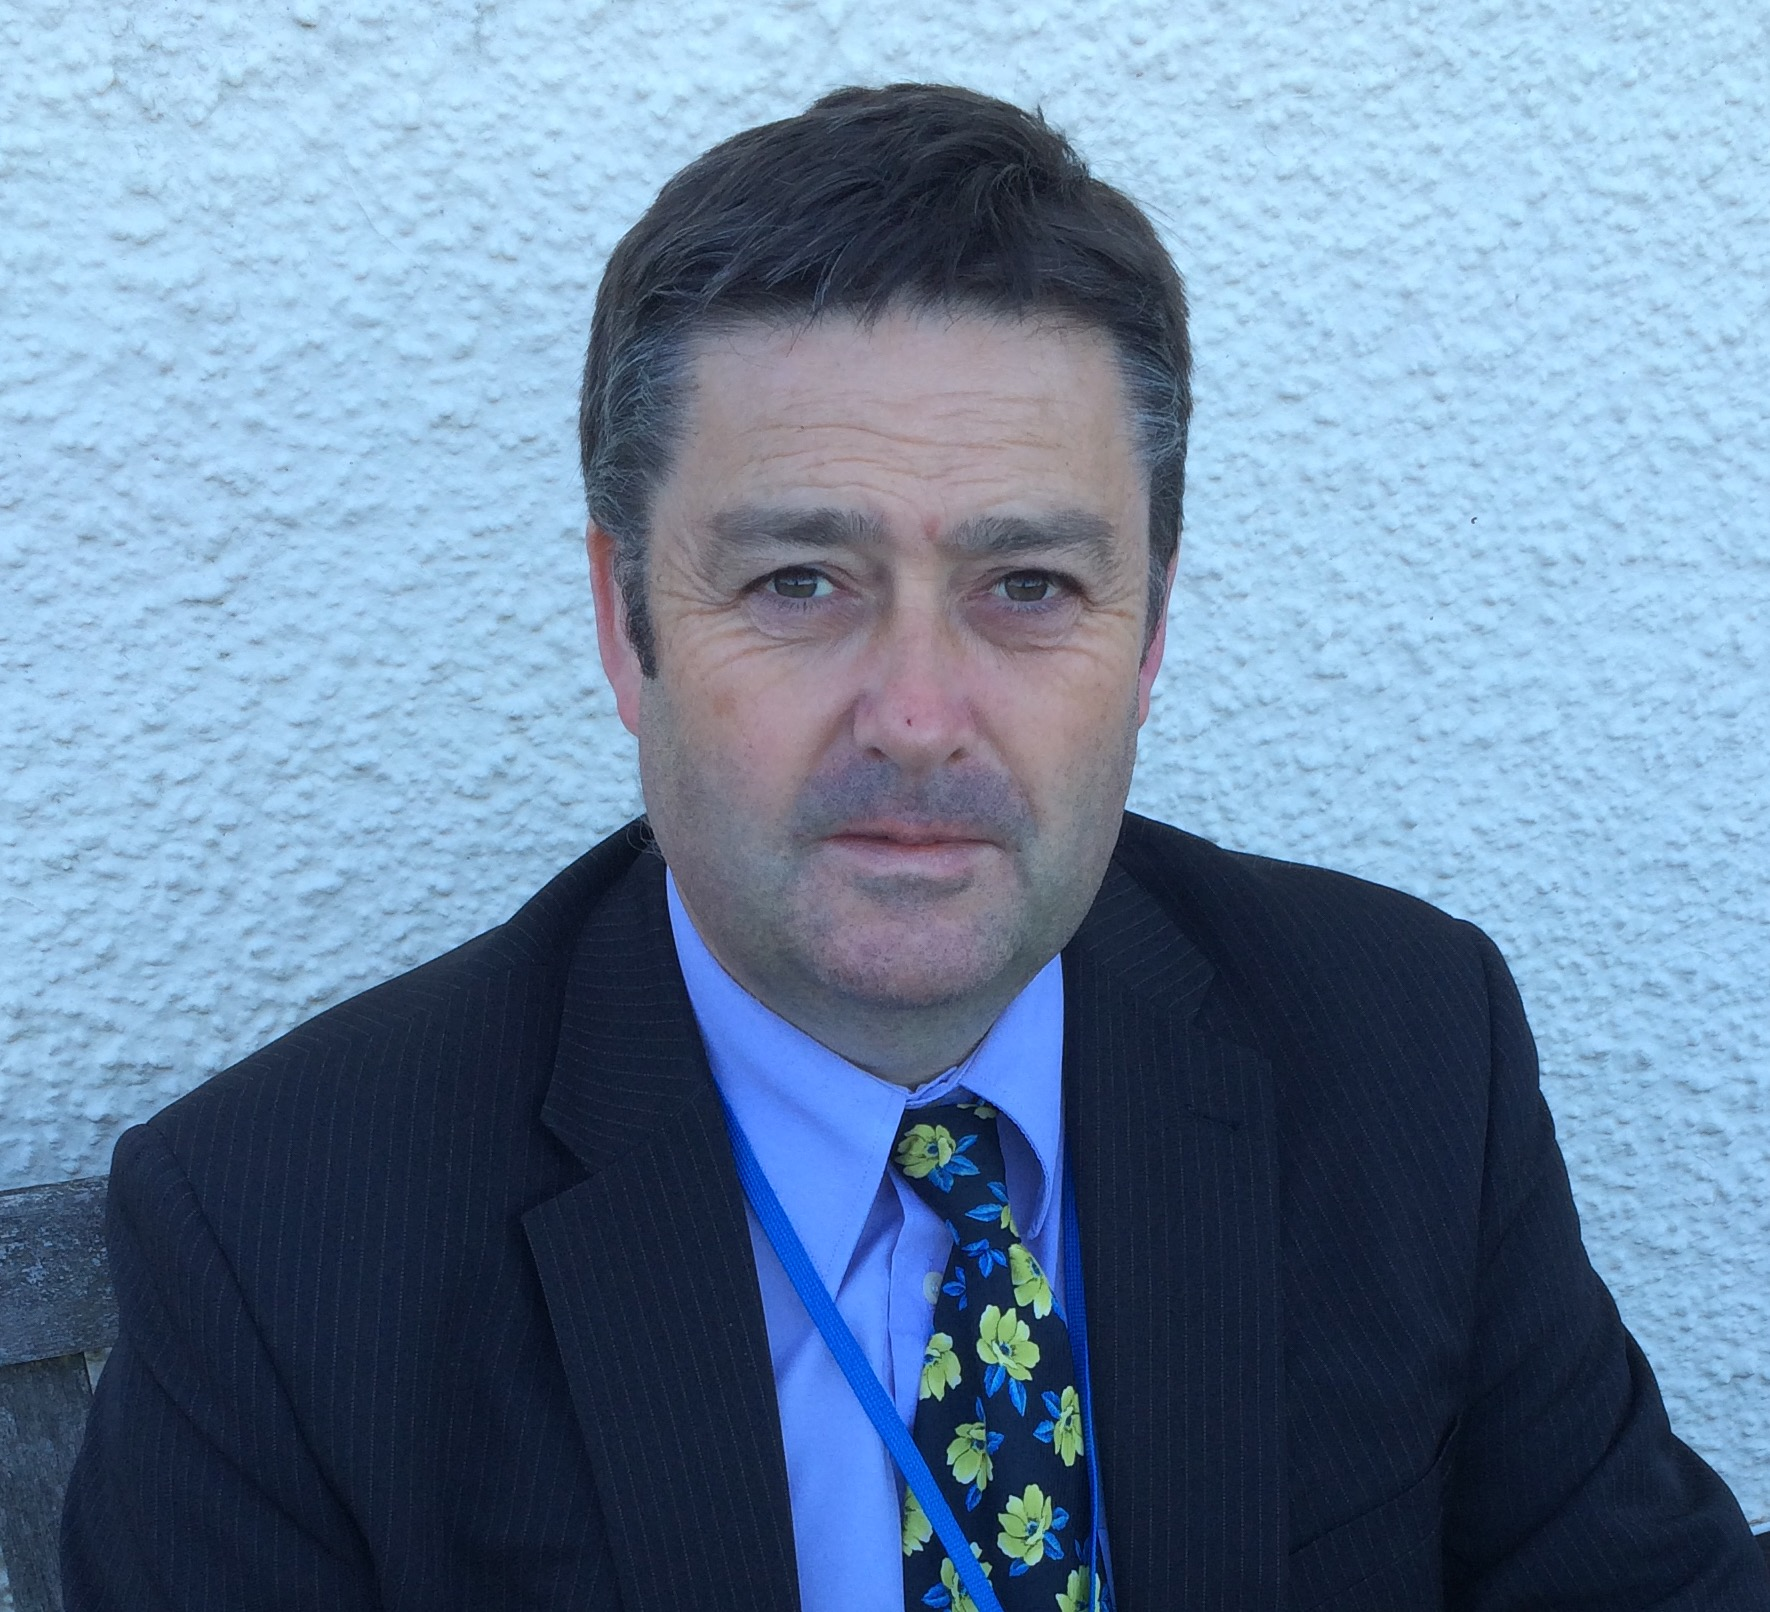 Teacher selected to fight Gower for the Liberal Democrats